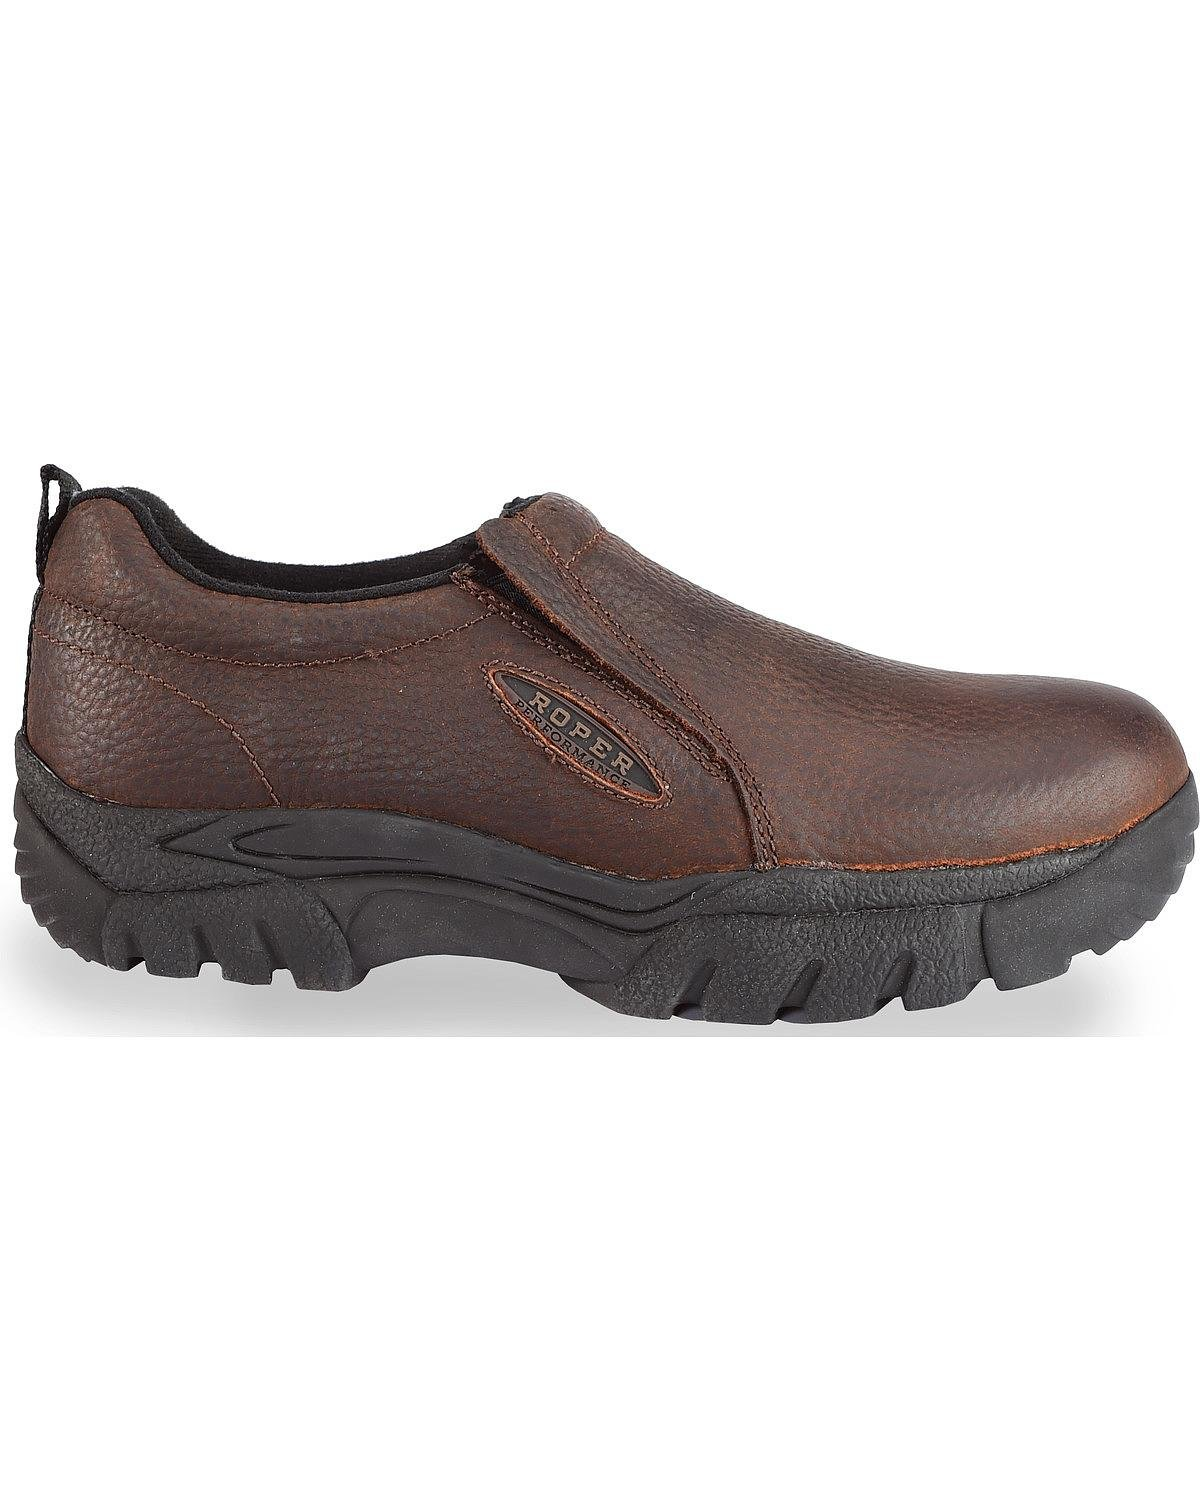 Roper Women's Performance Sport Slip-On Casual Shoes Round Toe Brown B00FSE3SPW 8.5 B(M) US Brown